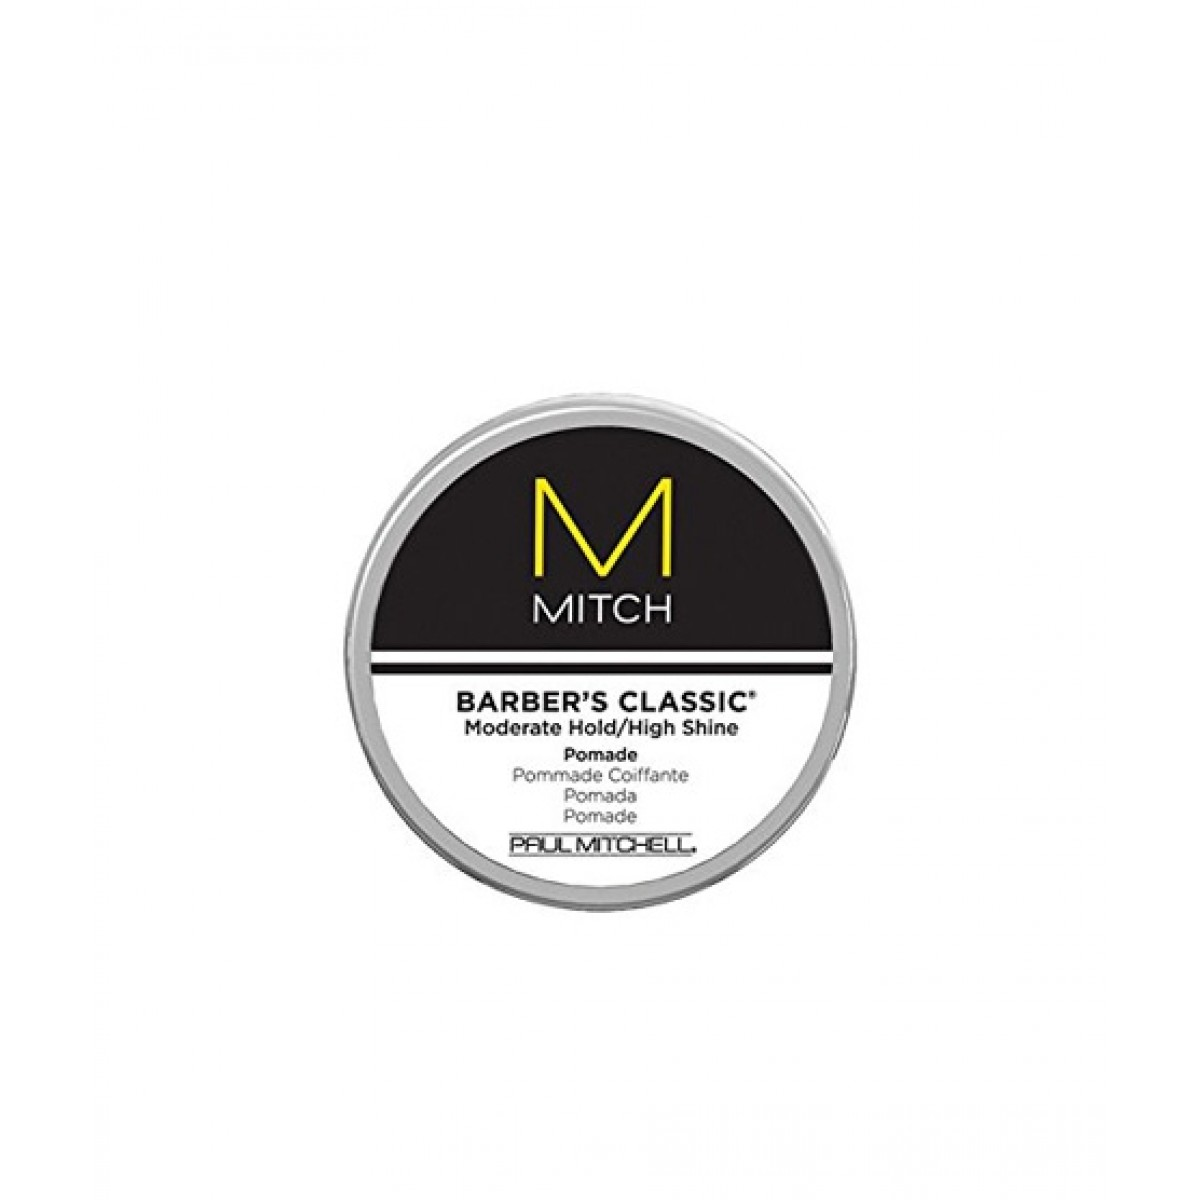 Paul Mitchell Barbers Classic Hair Pomade